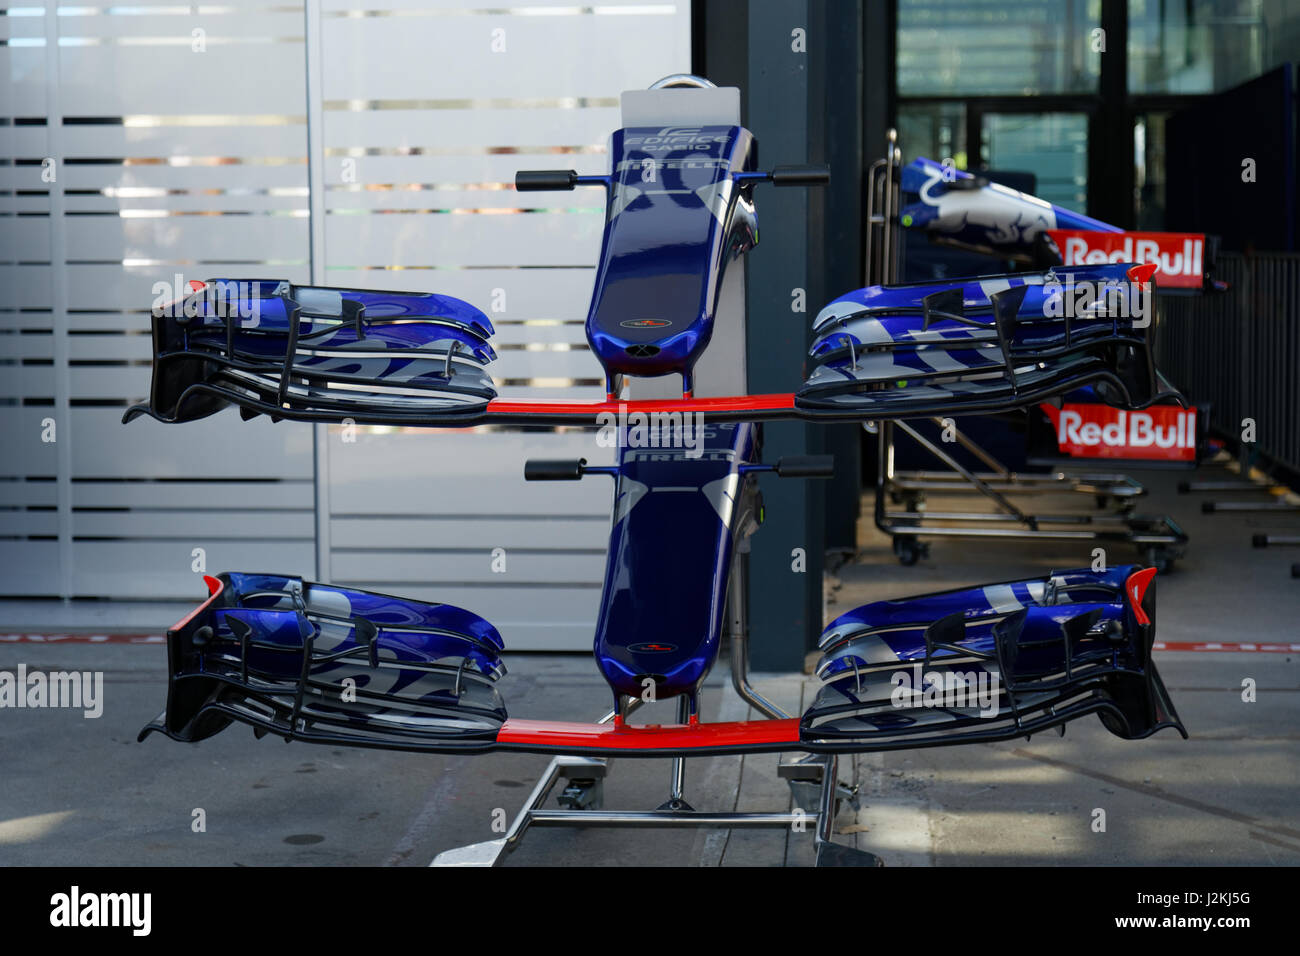 Toro Rosso front wings on display in Melbourne GP pit lane - Stock Image